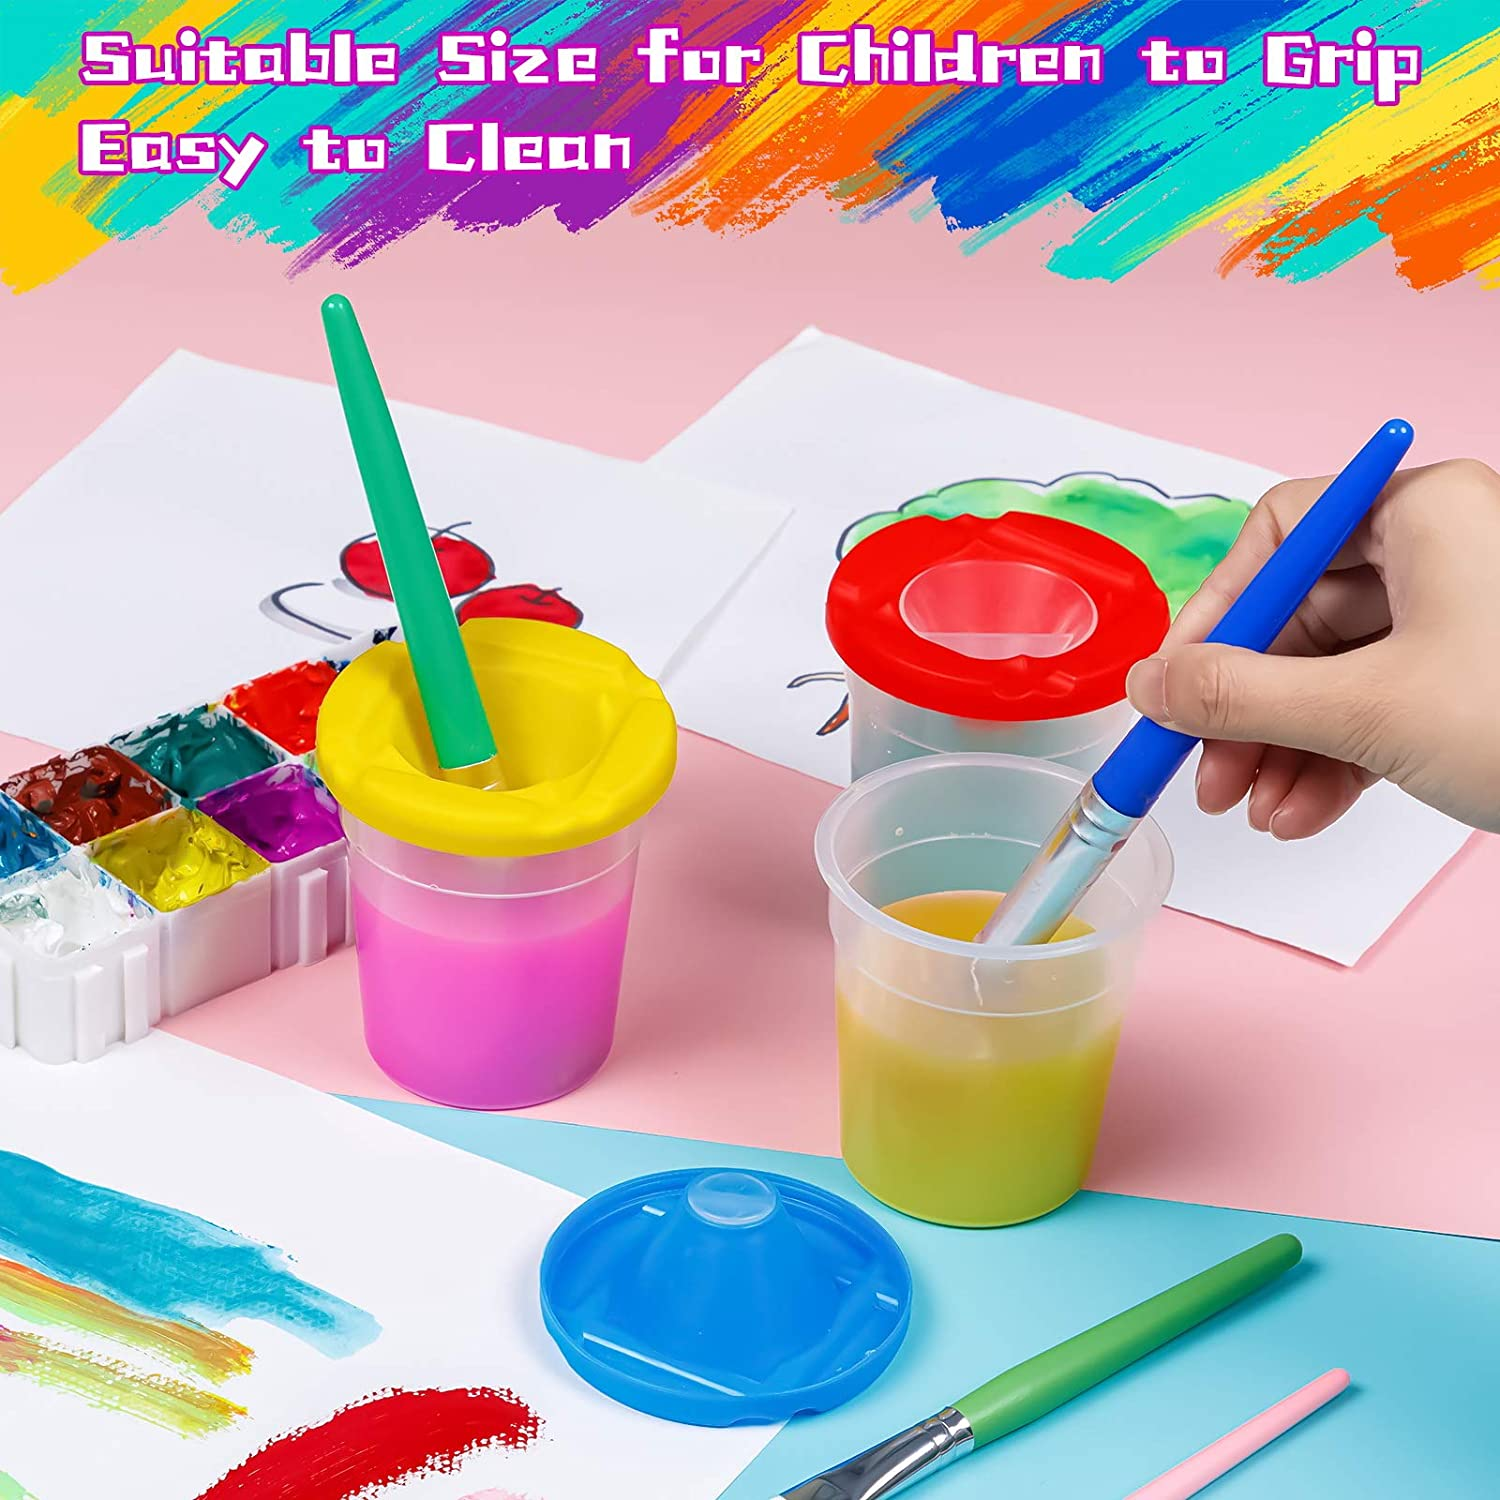 Spill Proof Paint Cups for Kids 3.5 Inches Tall Classroom 3 PCS Colorful No Spill Paint Cups with Lids Kids Art Paint Supplies for School